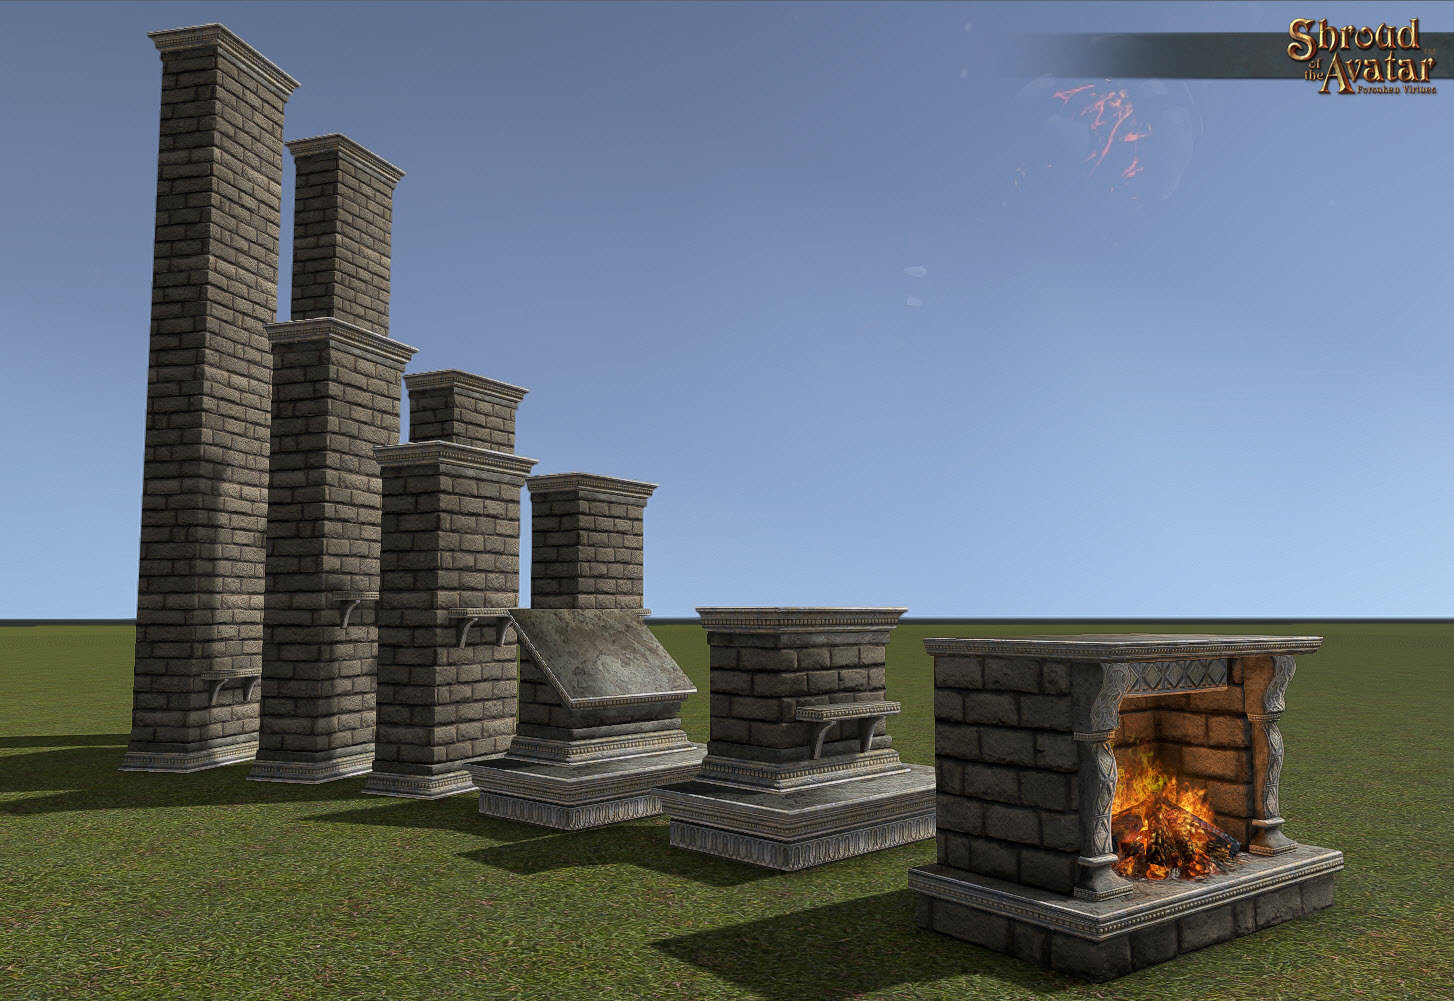 Large Ornate Stone Chimney Roof Extension - Shroud of the Avatar